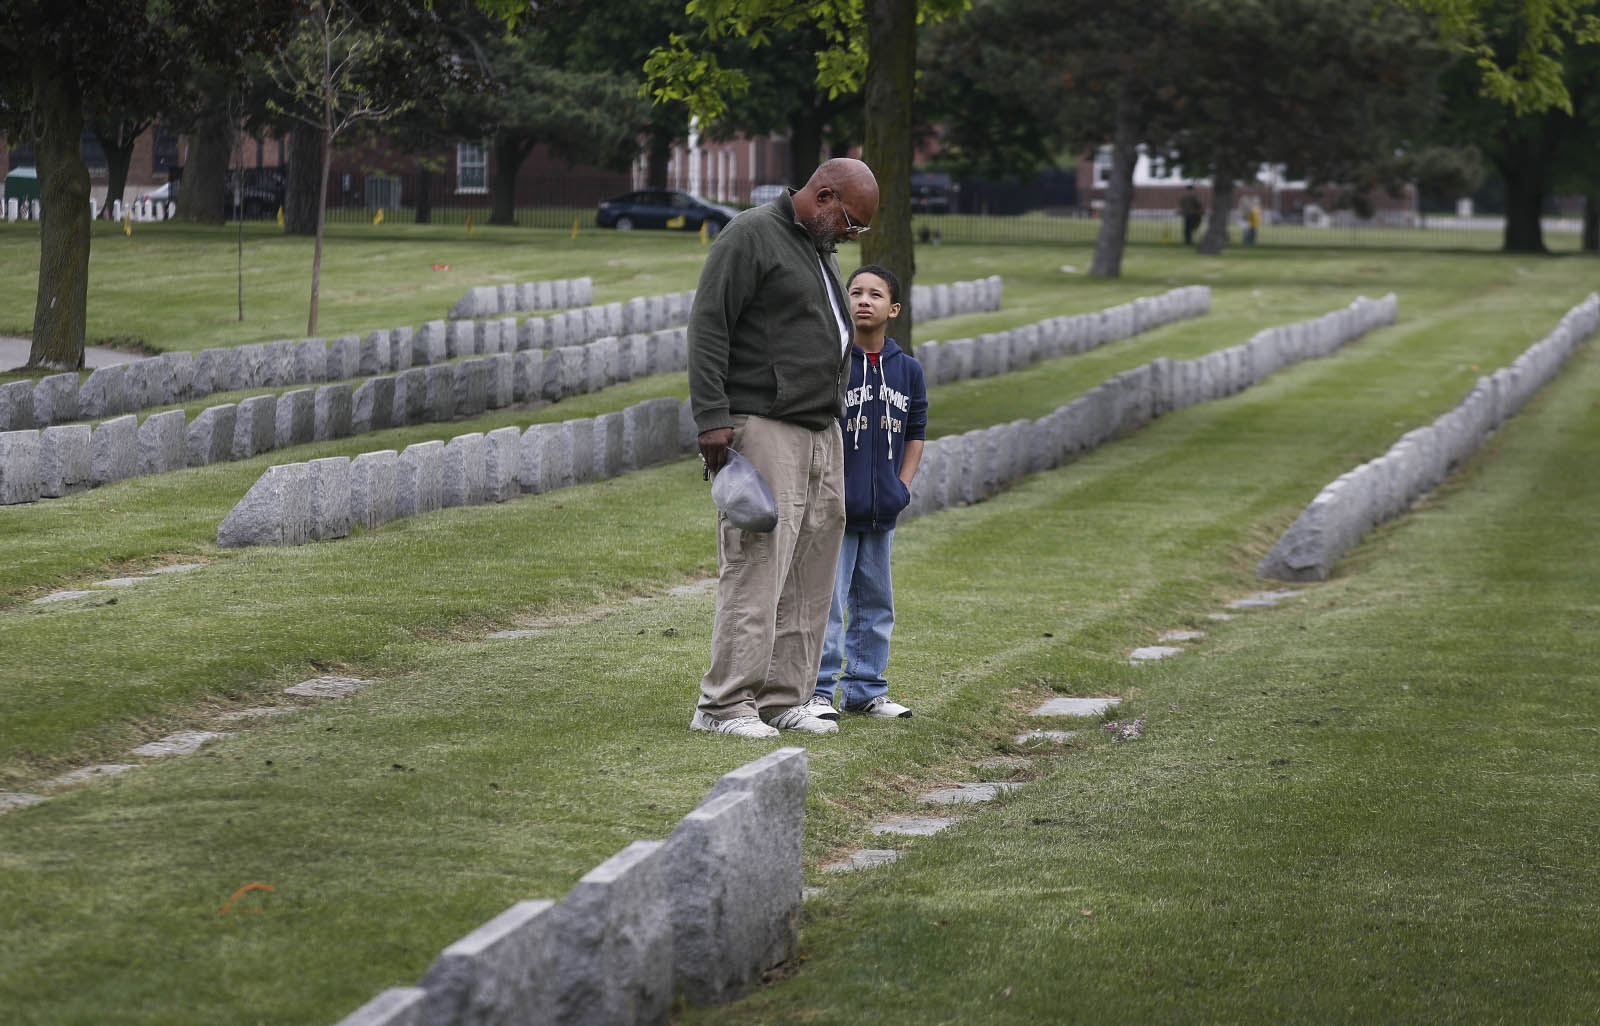 Grover Coleman and his grandson, Aidan Coleman, make annual Memorial Day trips to Forest Lawn to visit the graves of Grover's father, brother, and a close family friend, all veterans.